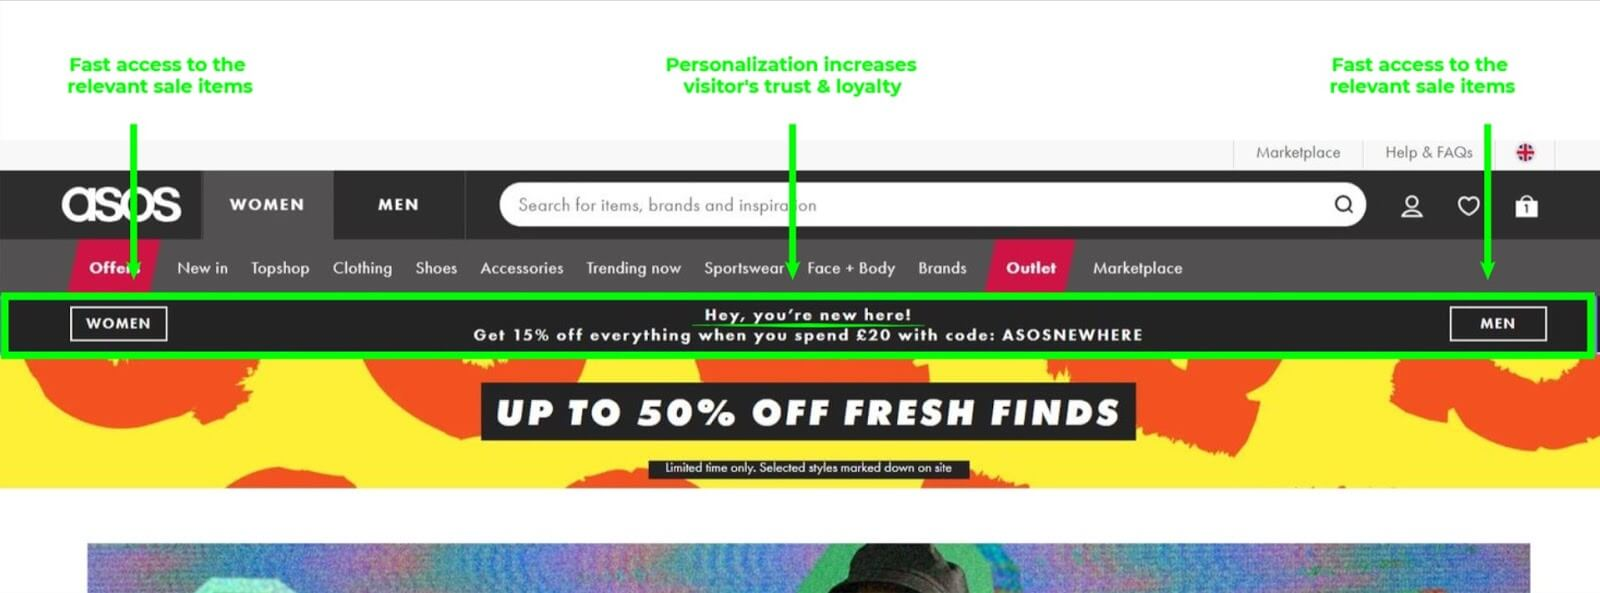 Email pop up